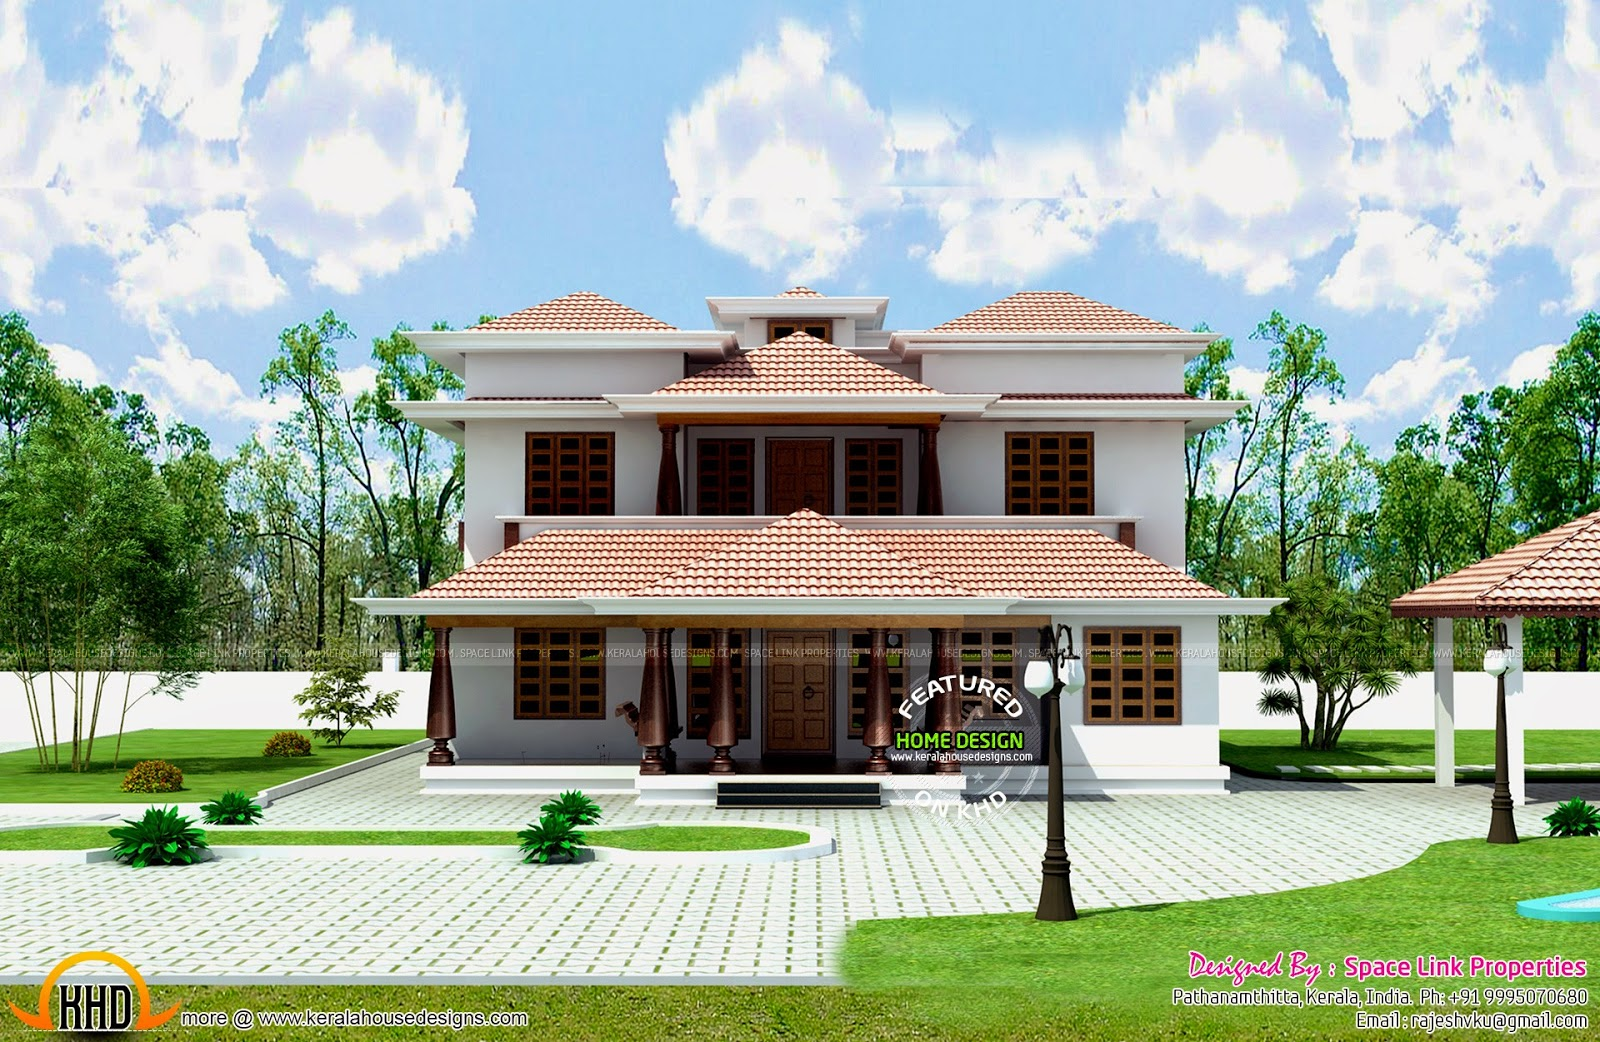 Typical kerala traditional house kerala home design and for Traditional house plans kerala style